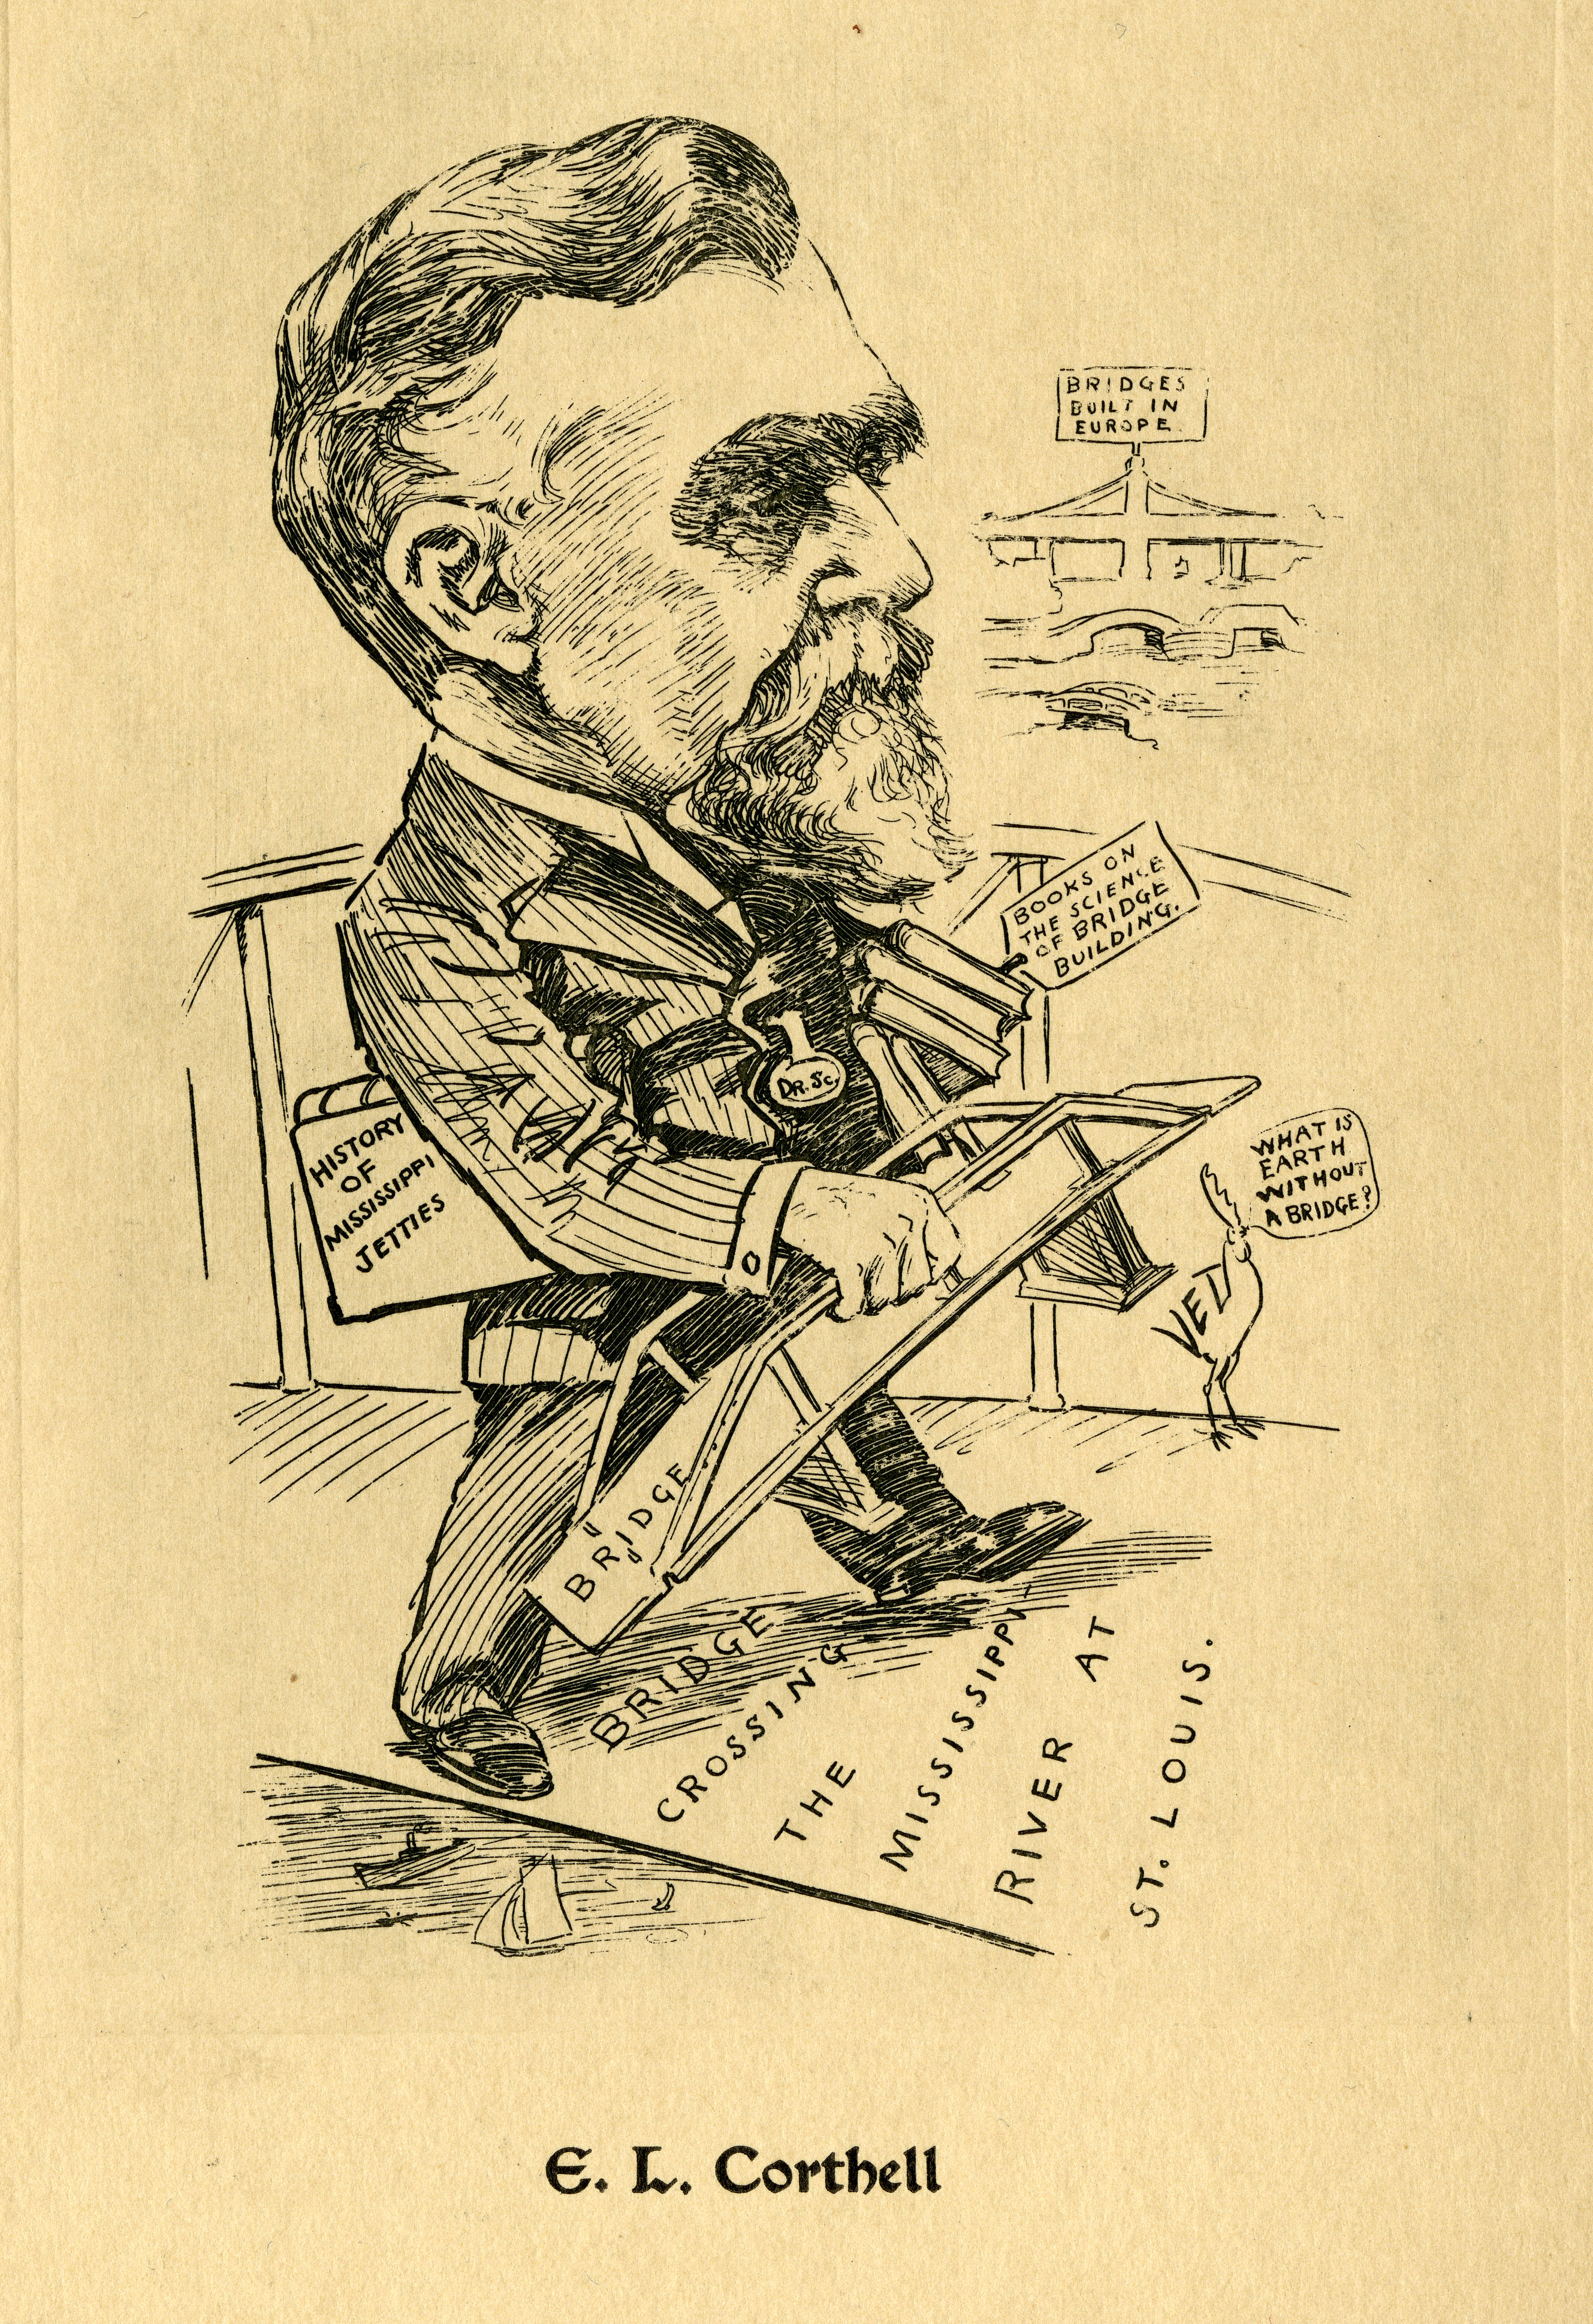 Caricature of Elmer L. Corthell (1840-1916), civil engineer and bridge builder.